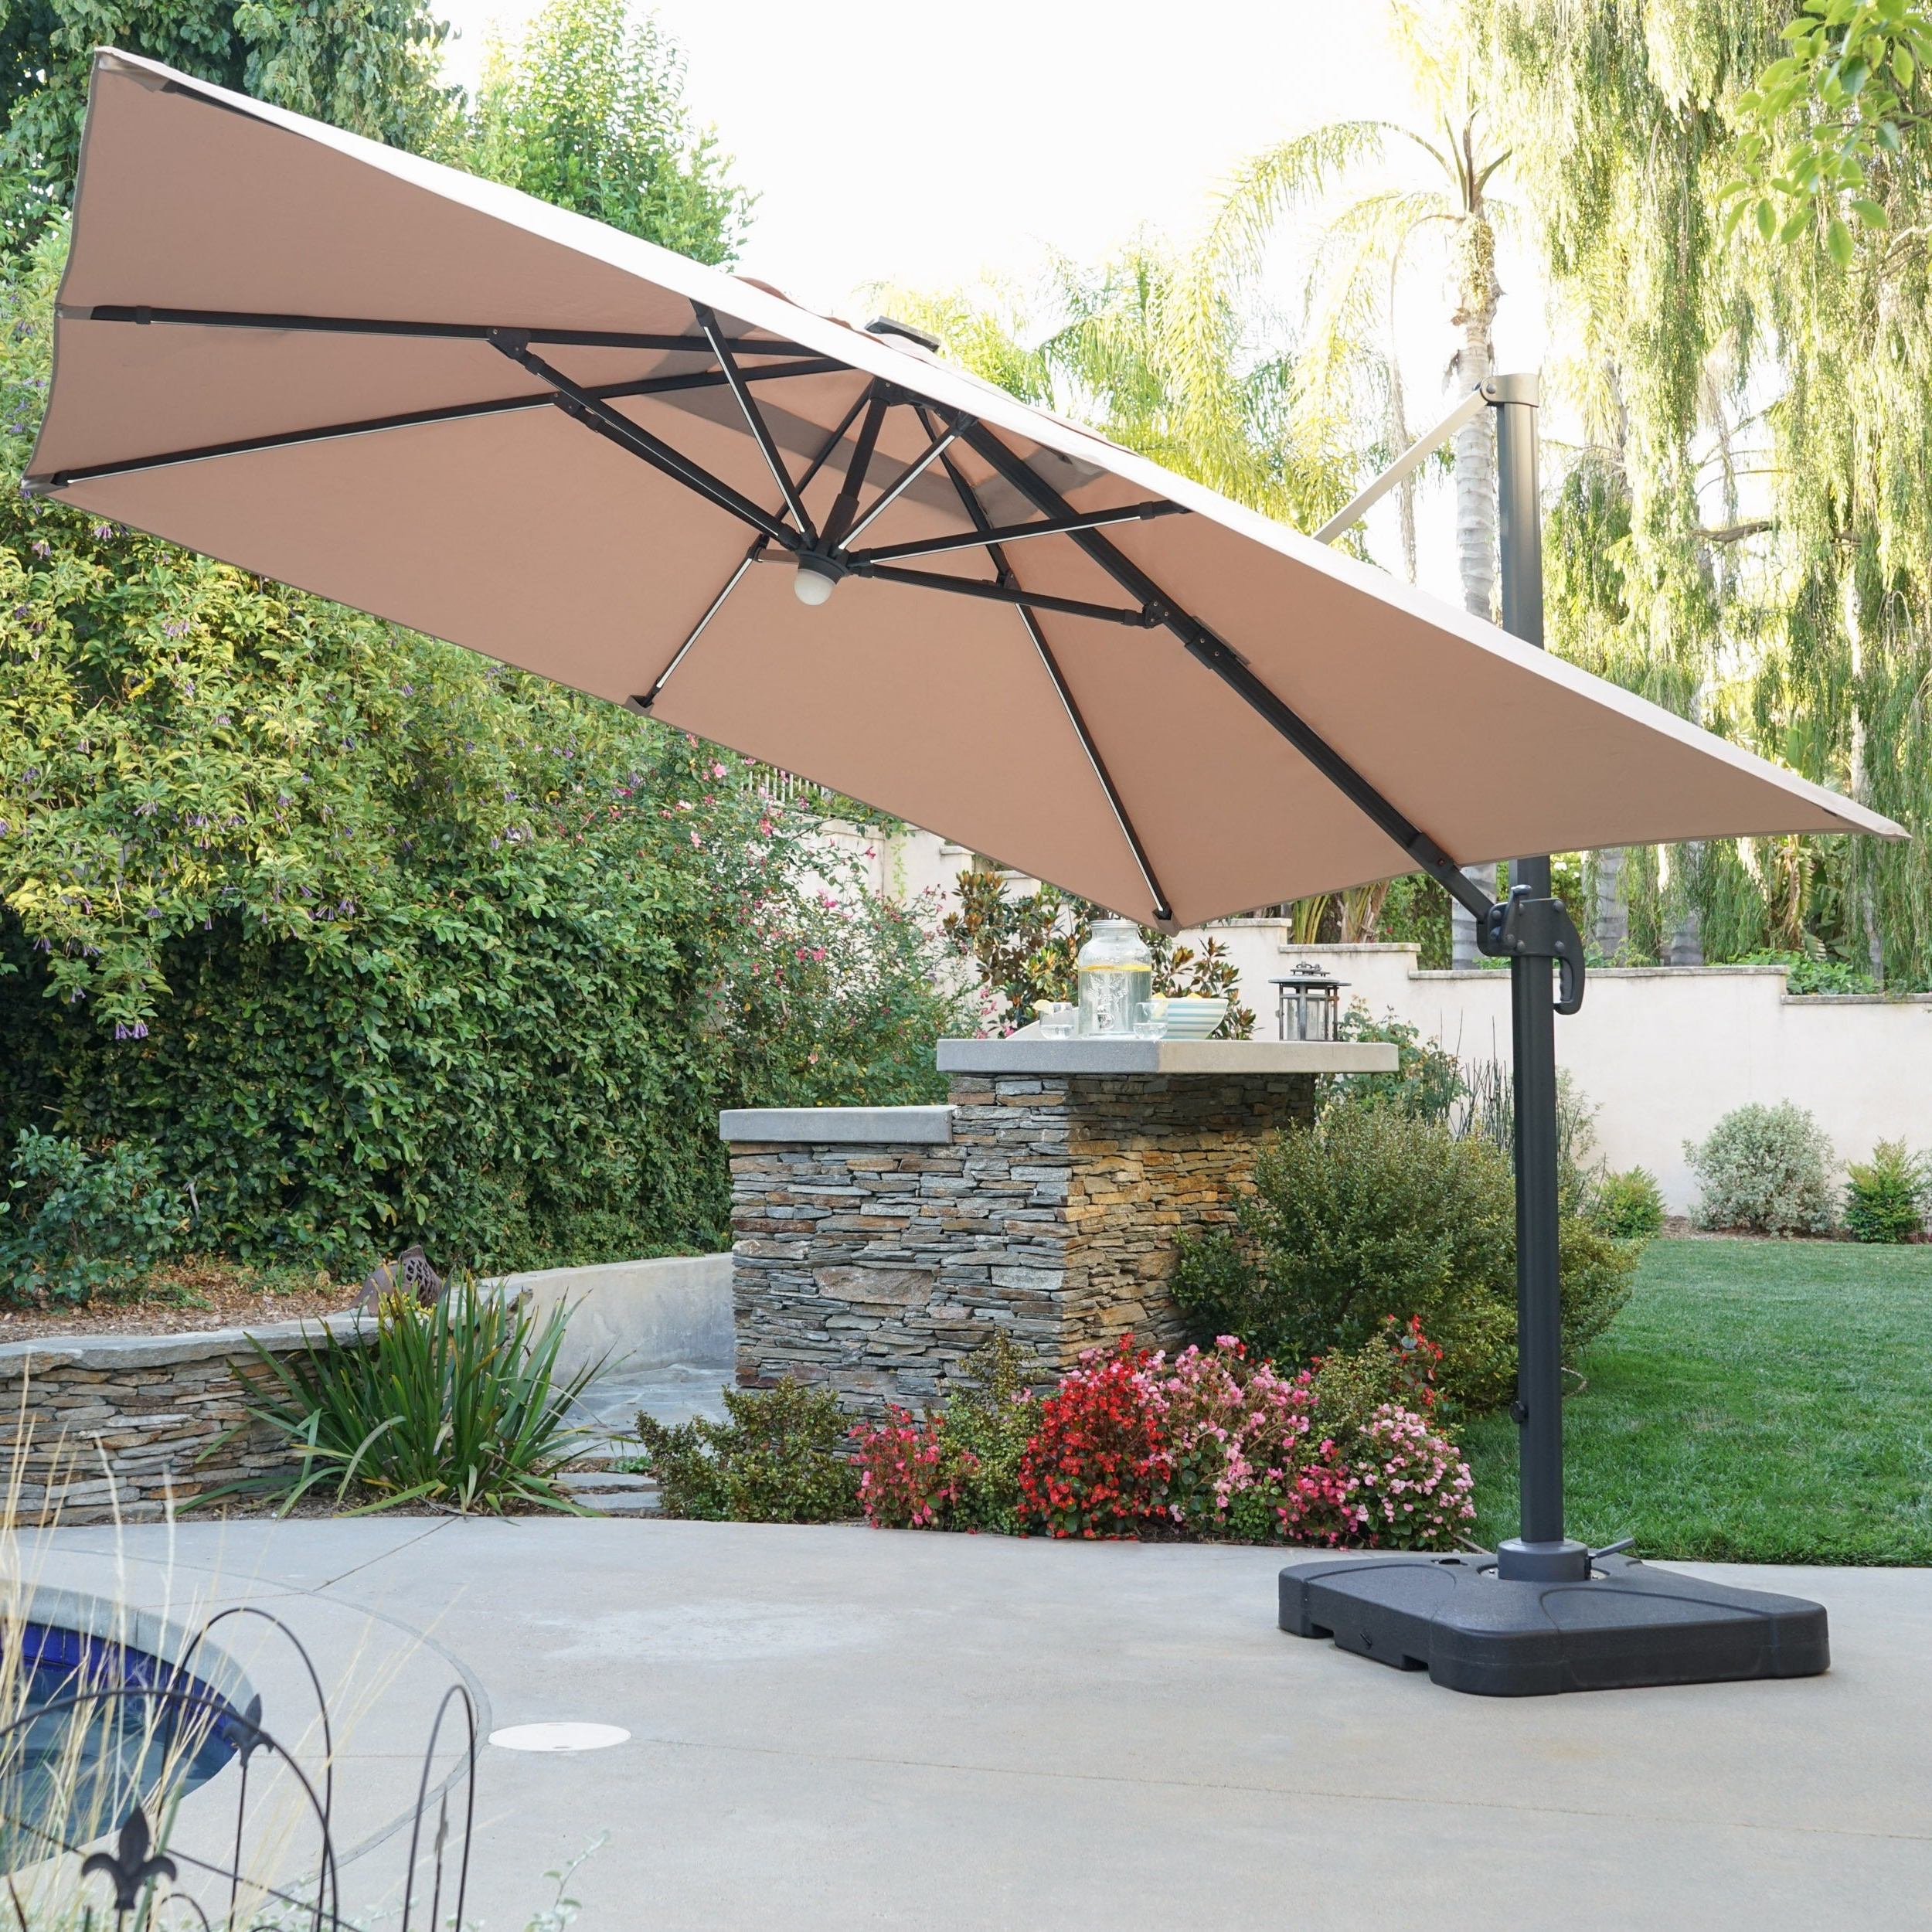 Recent Buy Cantilever Offset Patio Umbrellas Online At Overstock (Gallery 4 of 20)